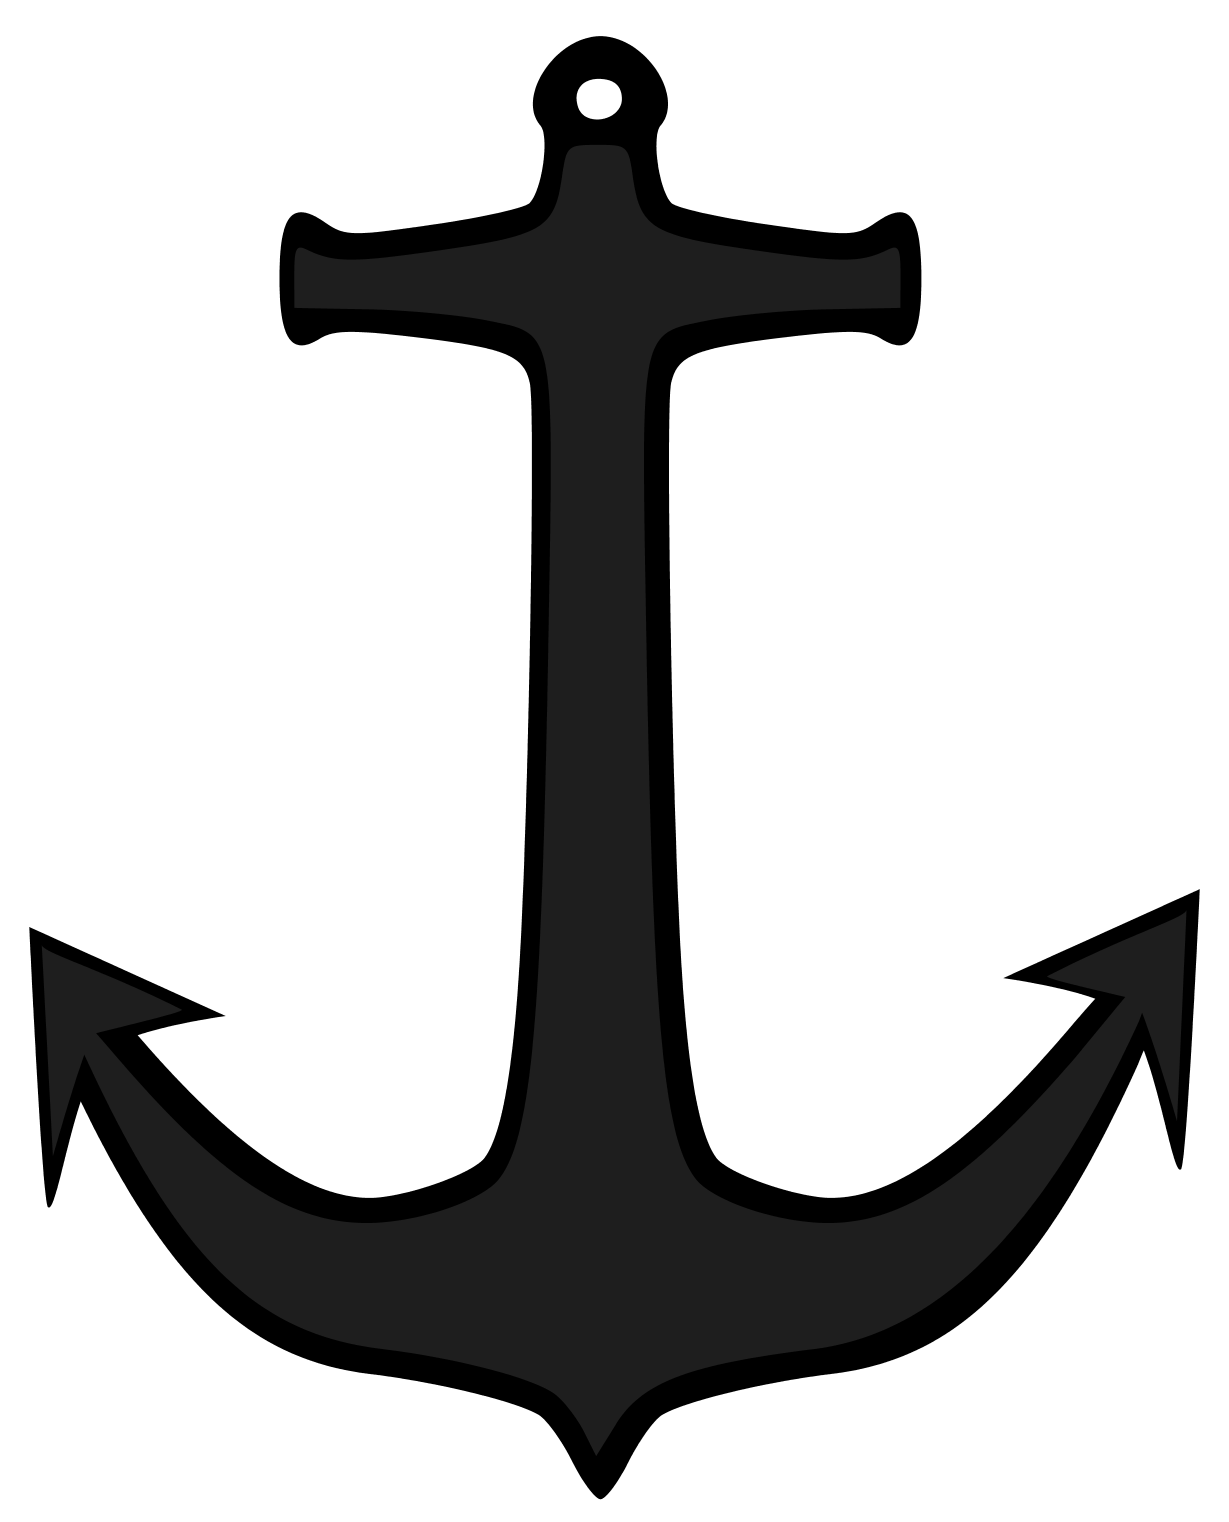 Anchor | Free Images at Clker.com - vector clip art online ...